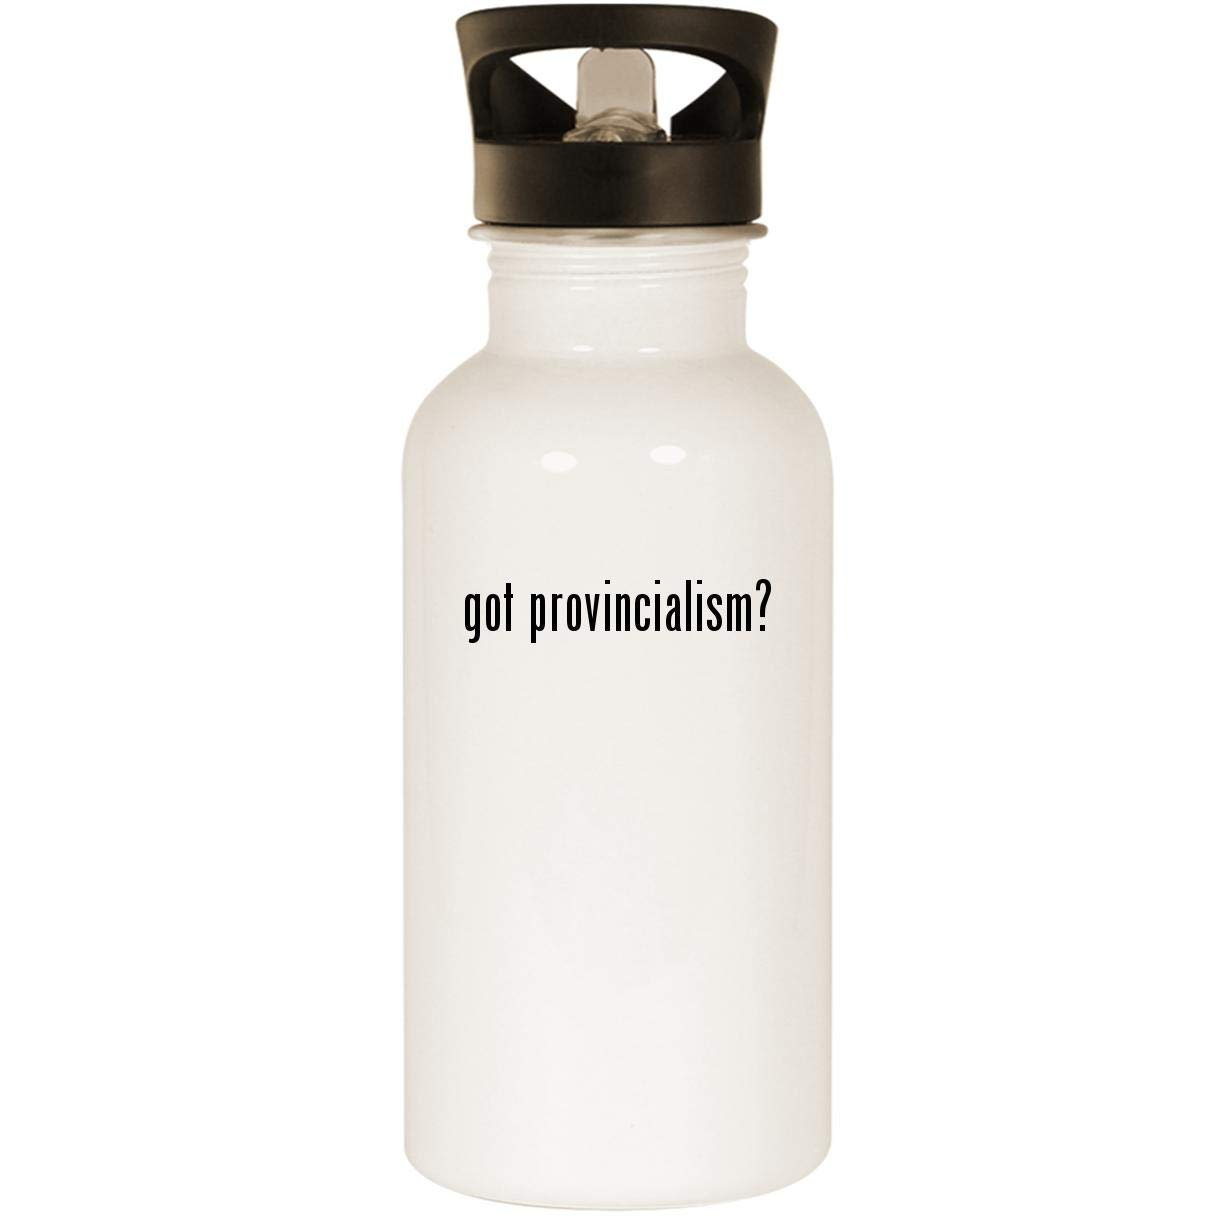 got provincialism? - Stainless Steel 20oz Road Ready Water Bottle, White